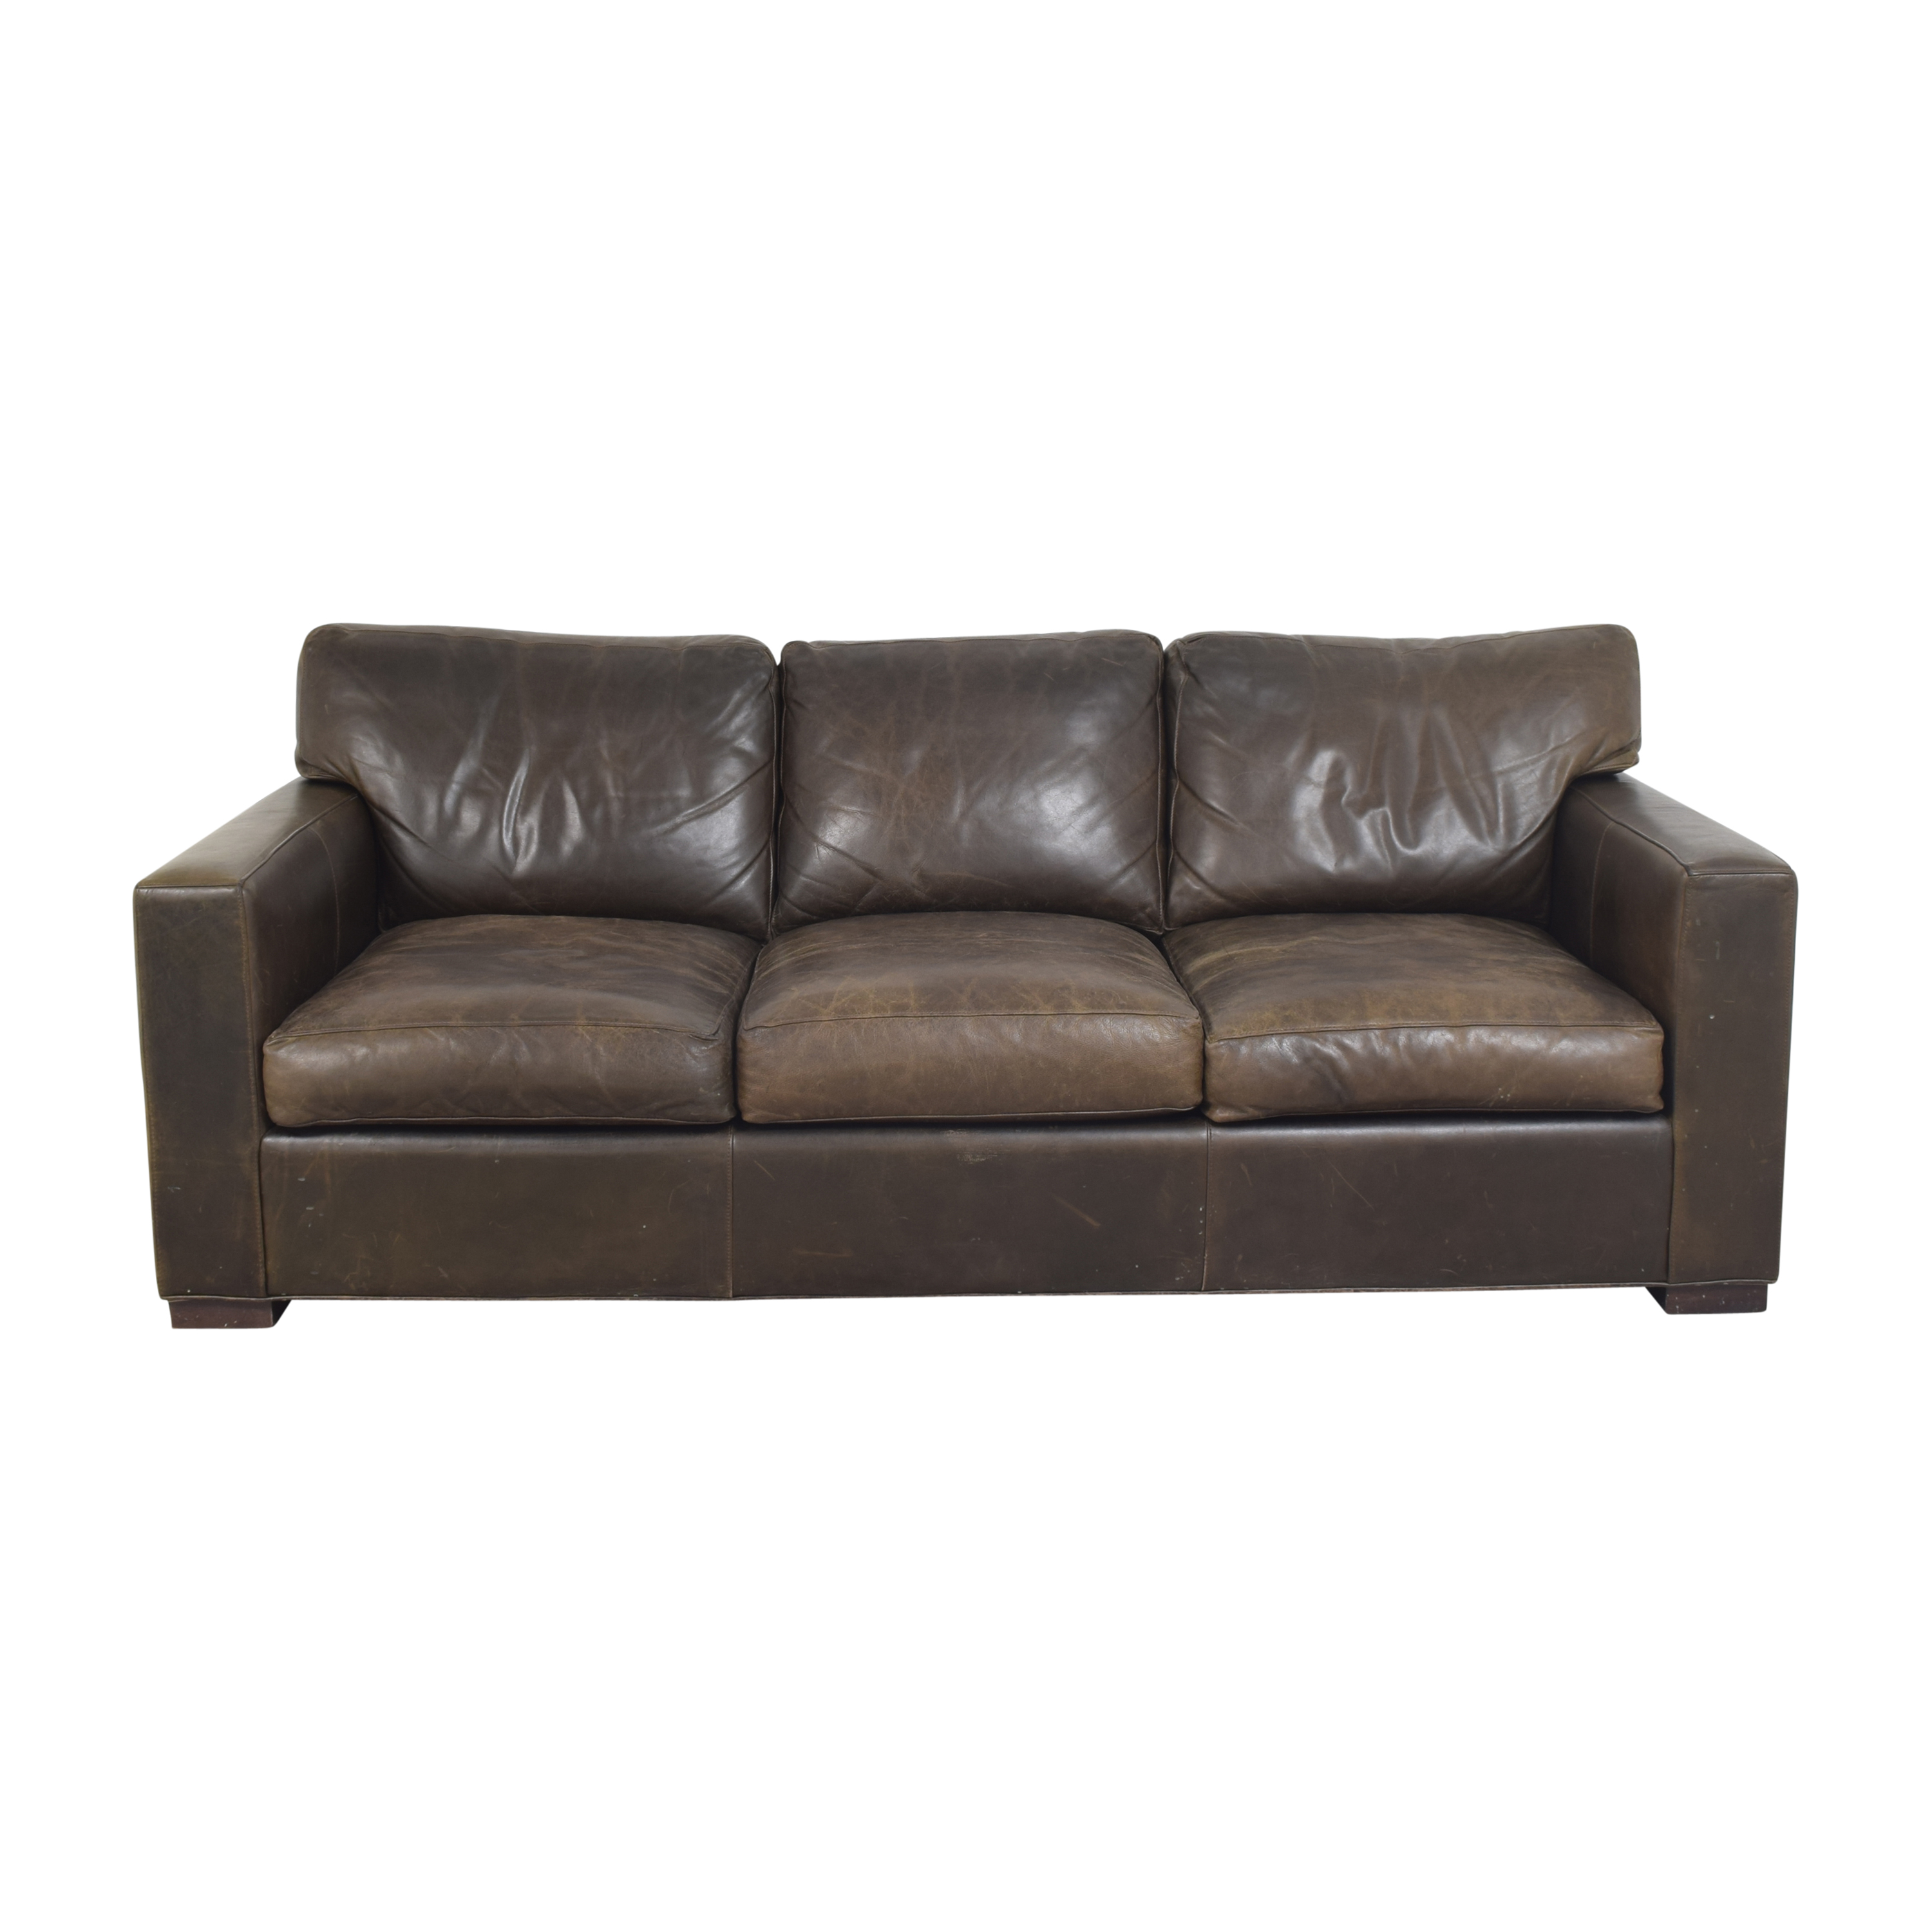 Crate & Barrel Crate & Barrel Axis II Three Seat Sofa price